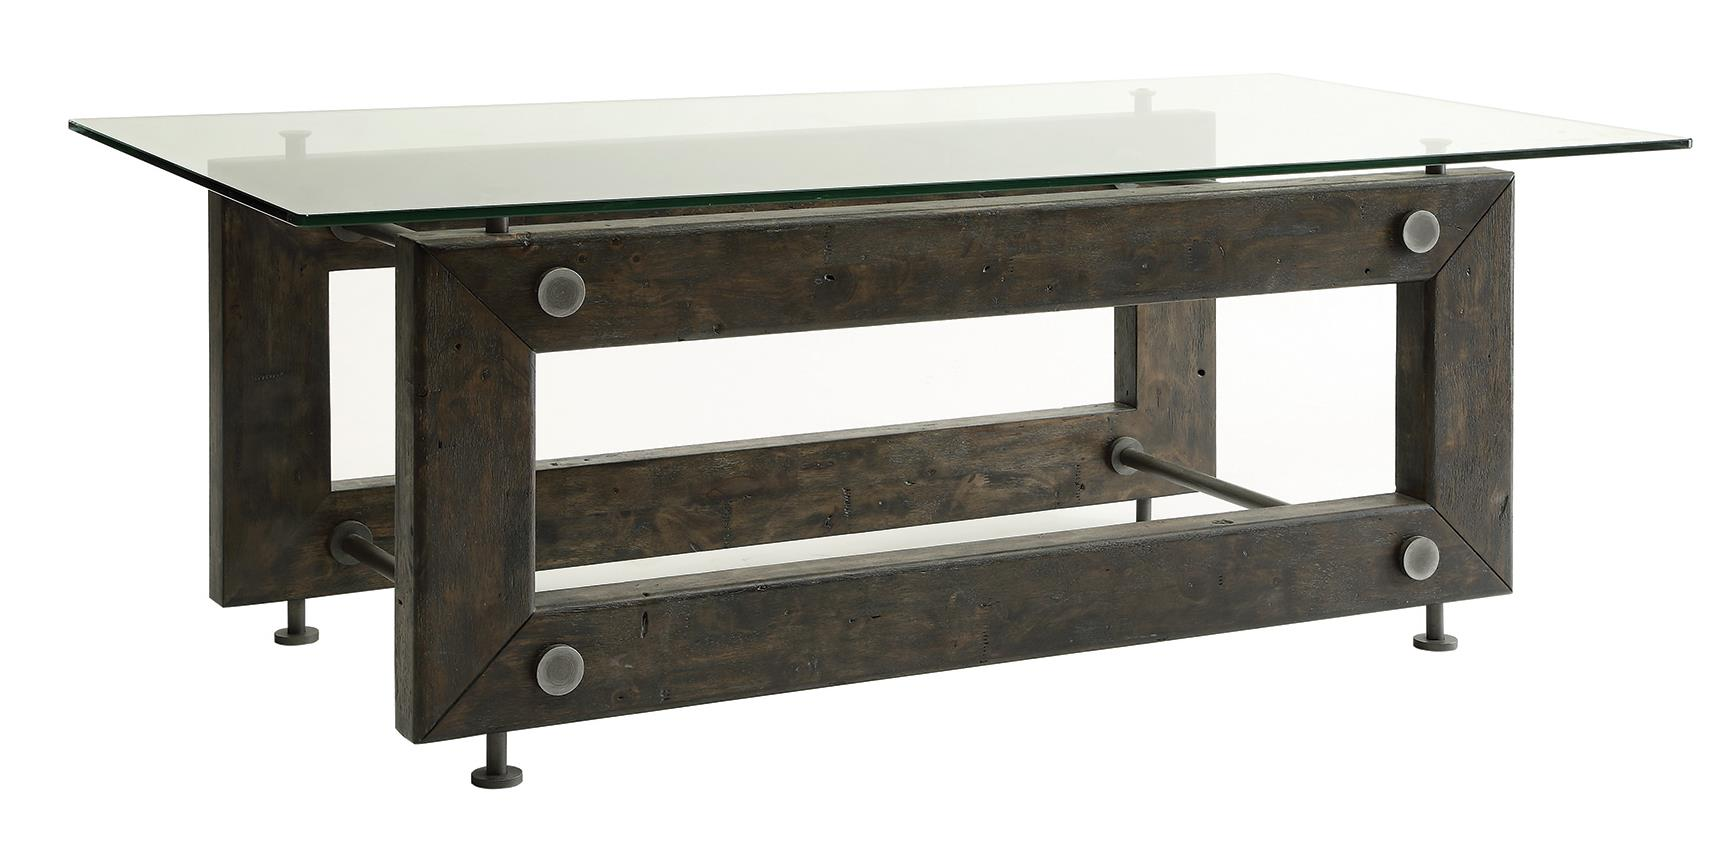 704278 industrial coffee table with tempered glass top